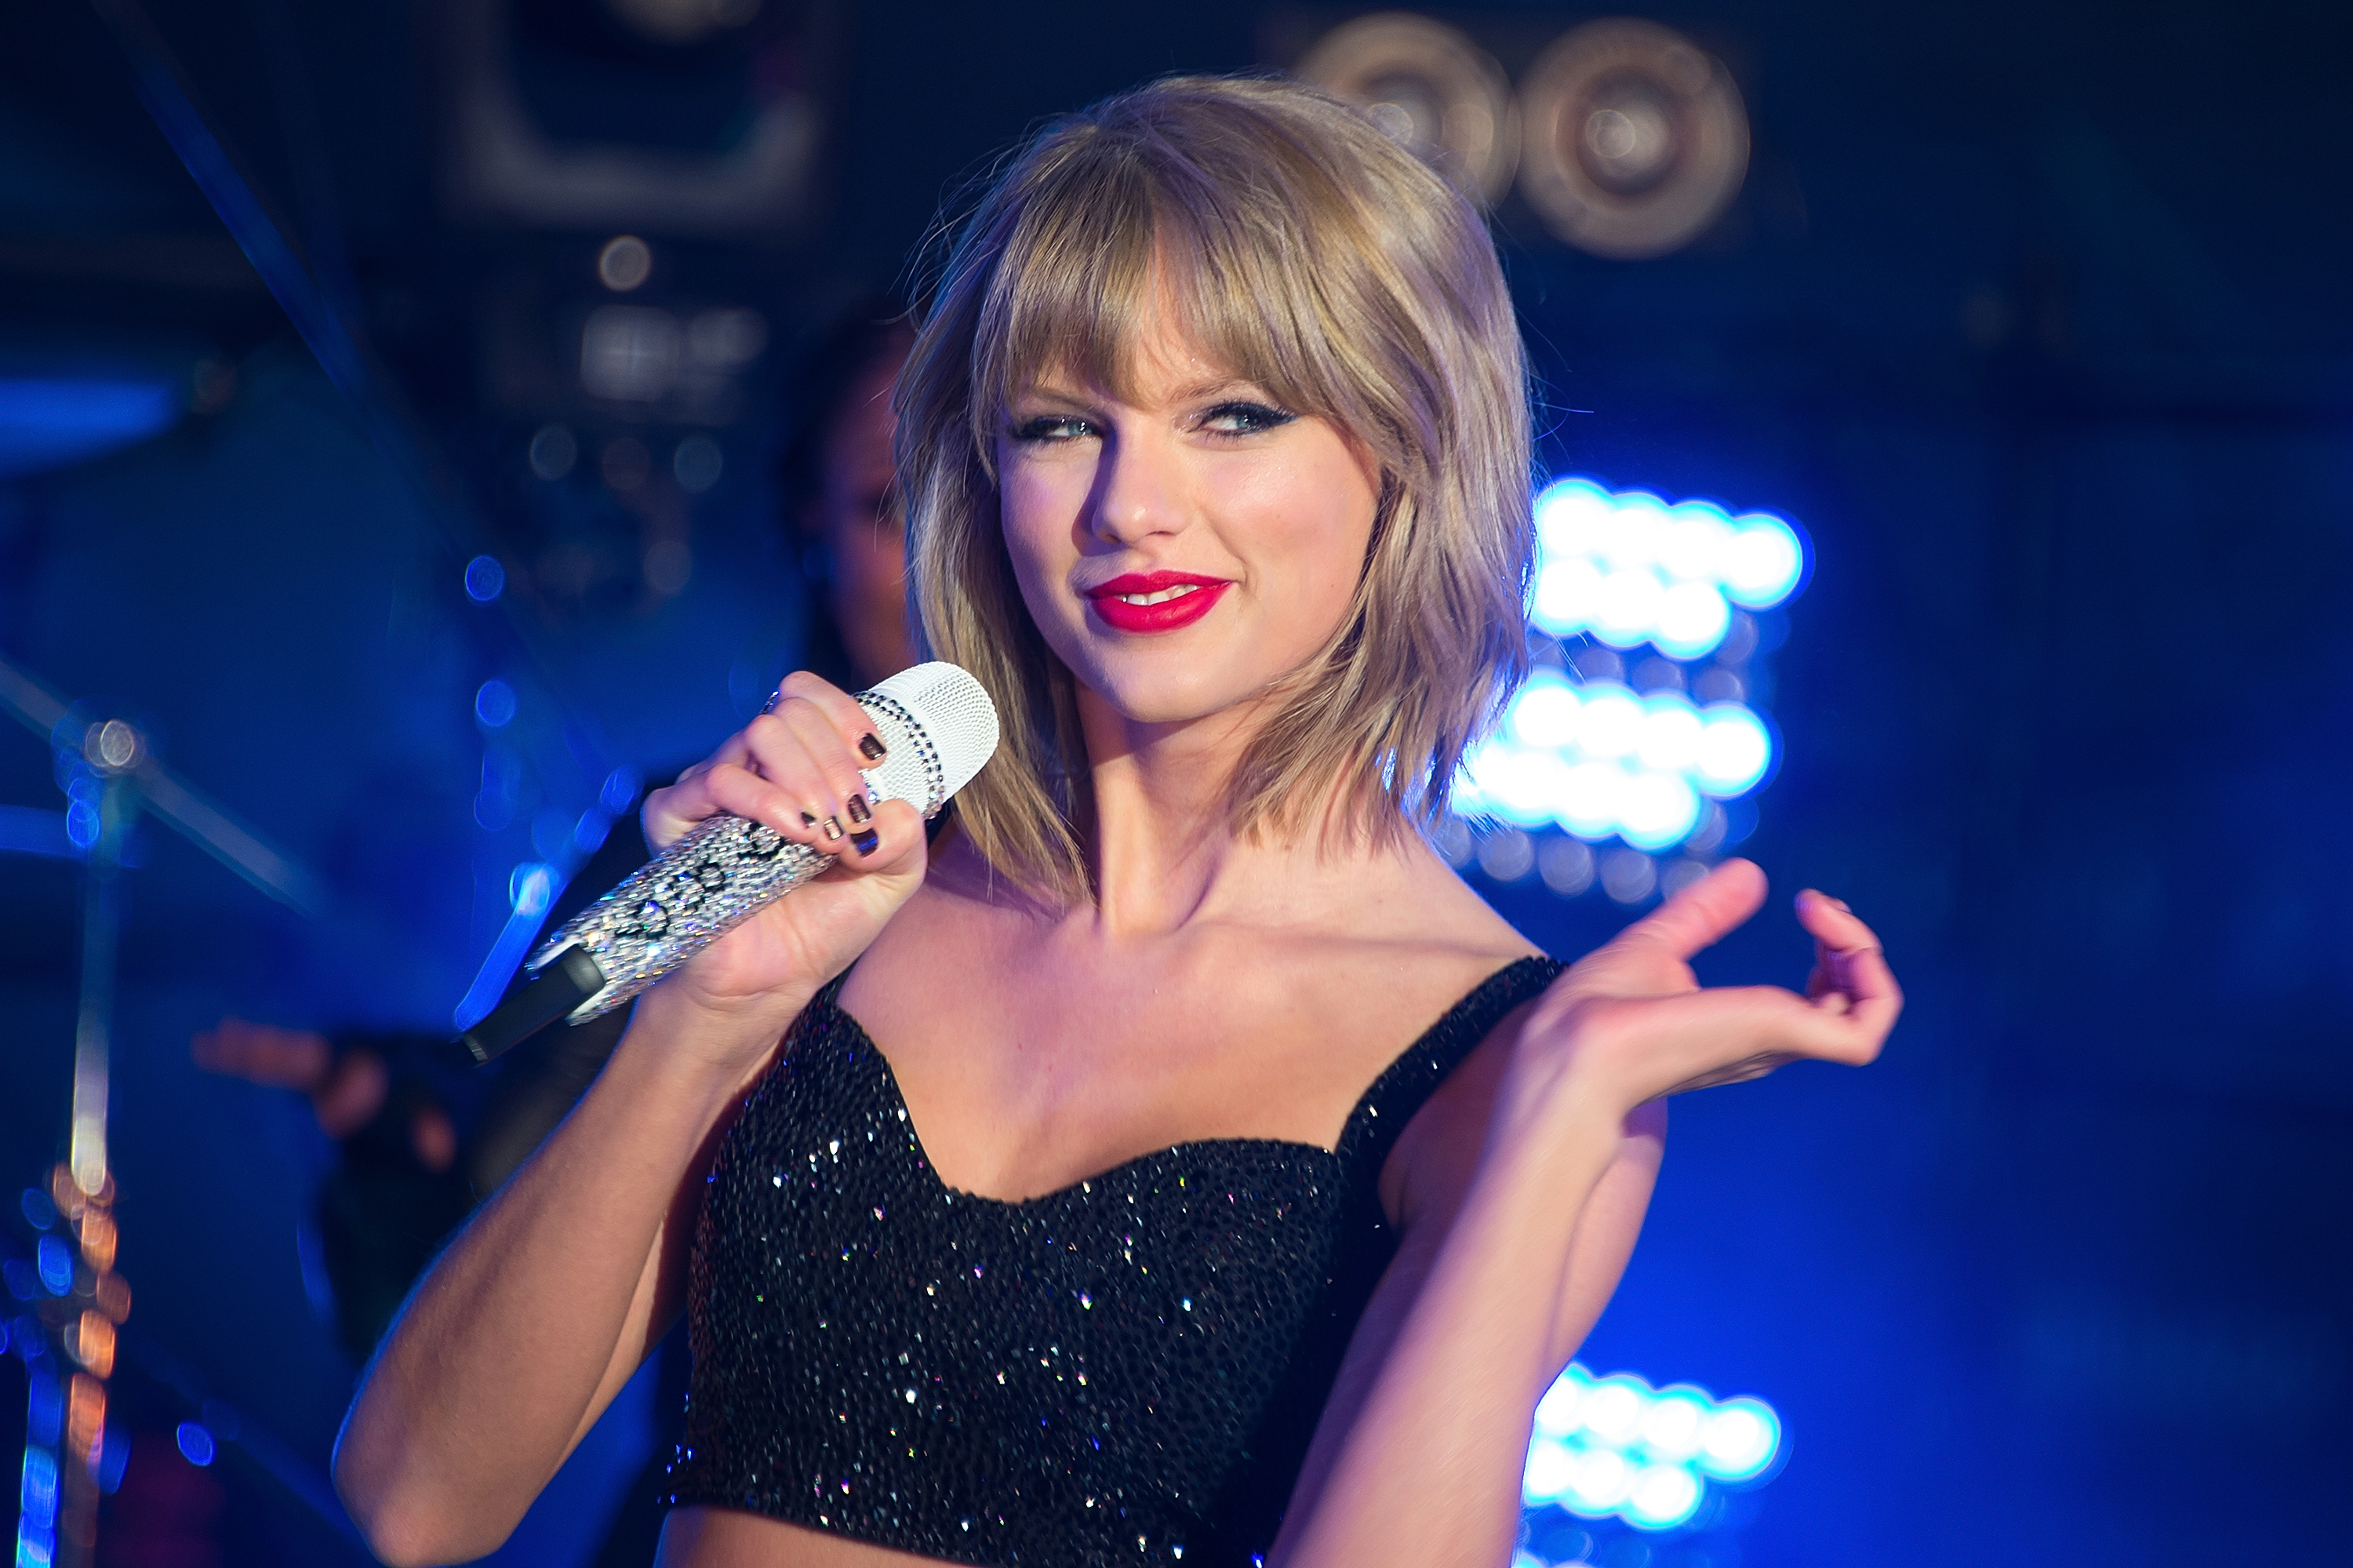 Taylor Swift has also trademarked our hearts.